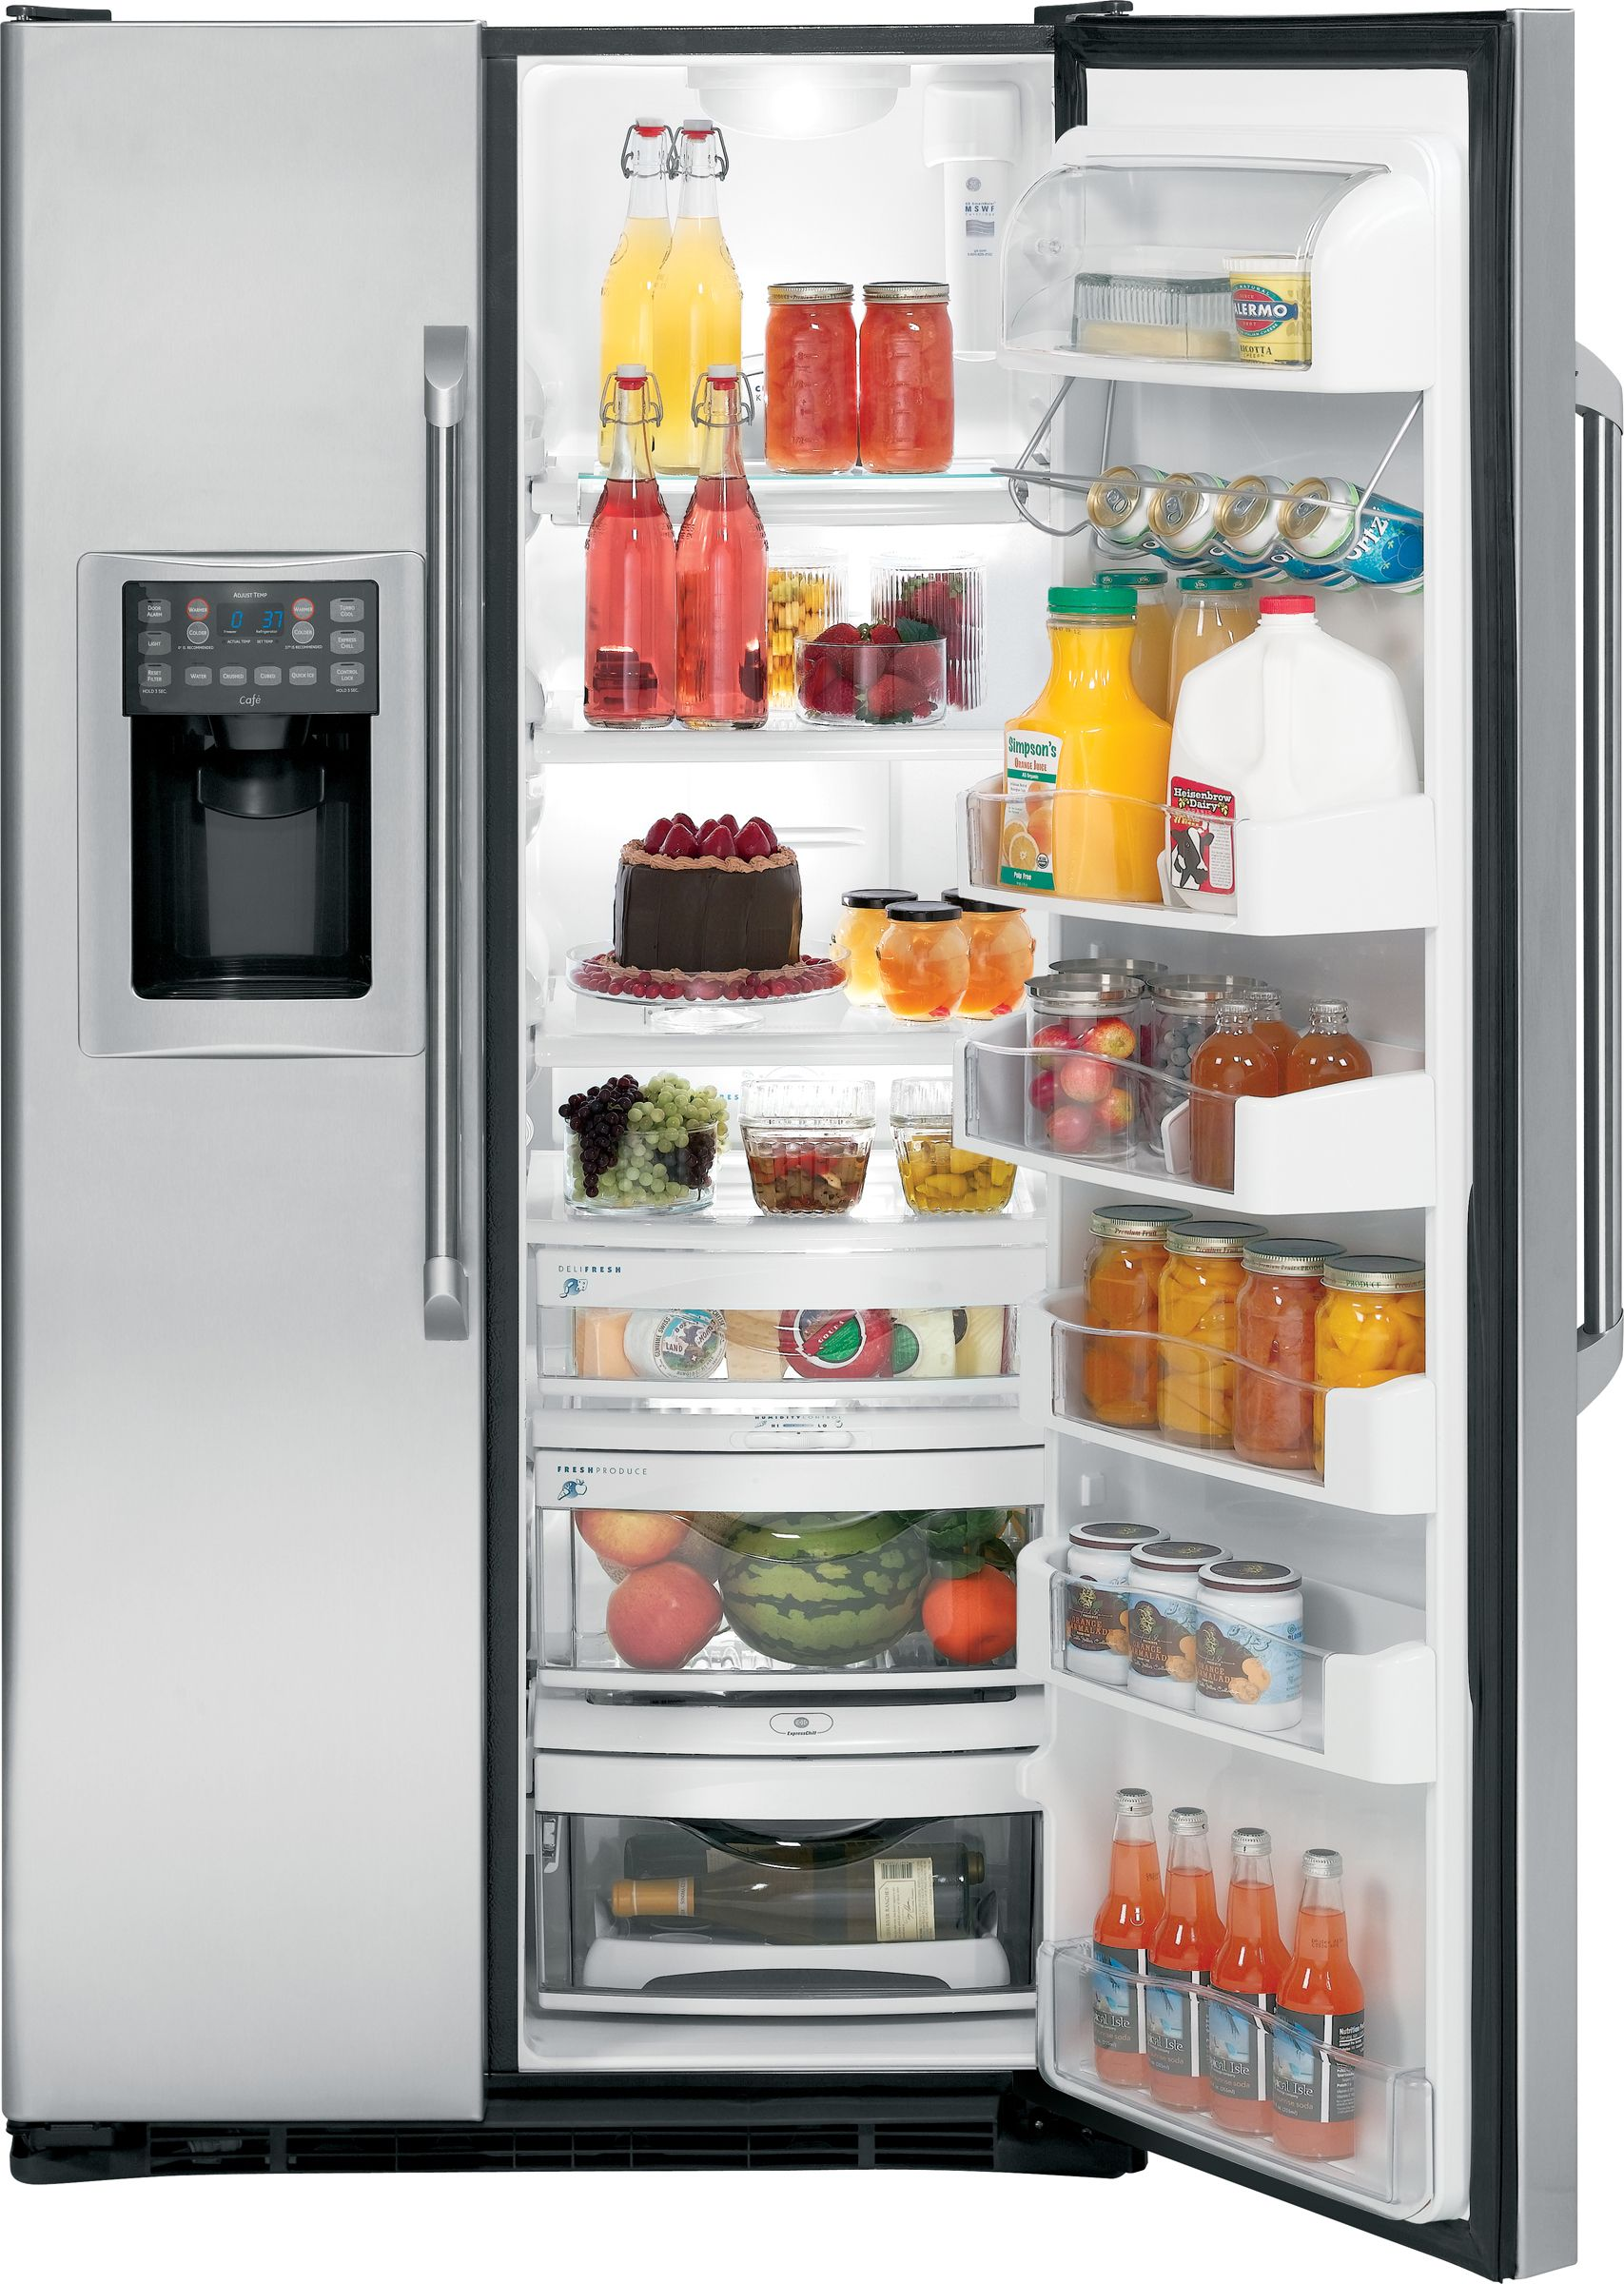 GE Café Caf&eacute:™ Series  24.6 cu. ft. Counter Depth Side-By-Side Refrigerator